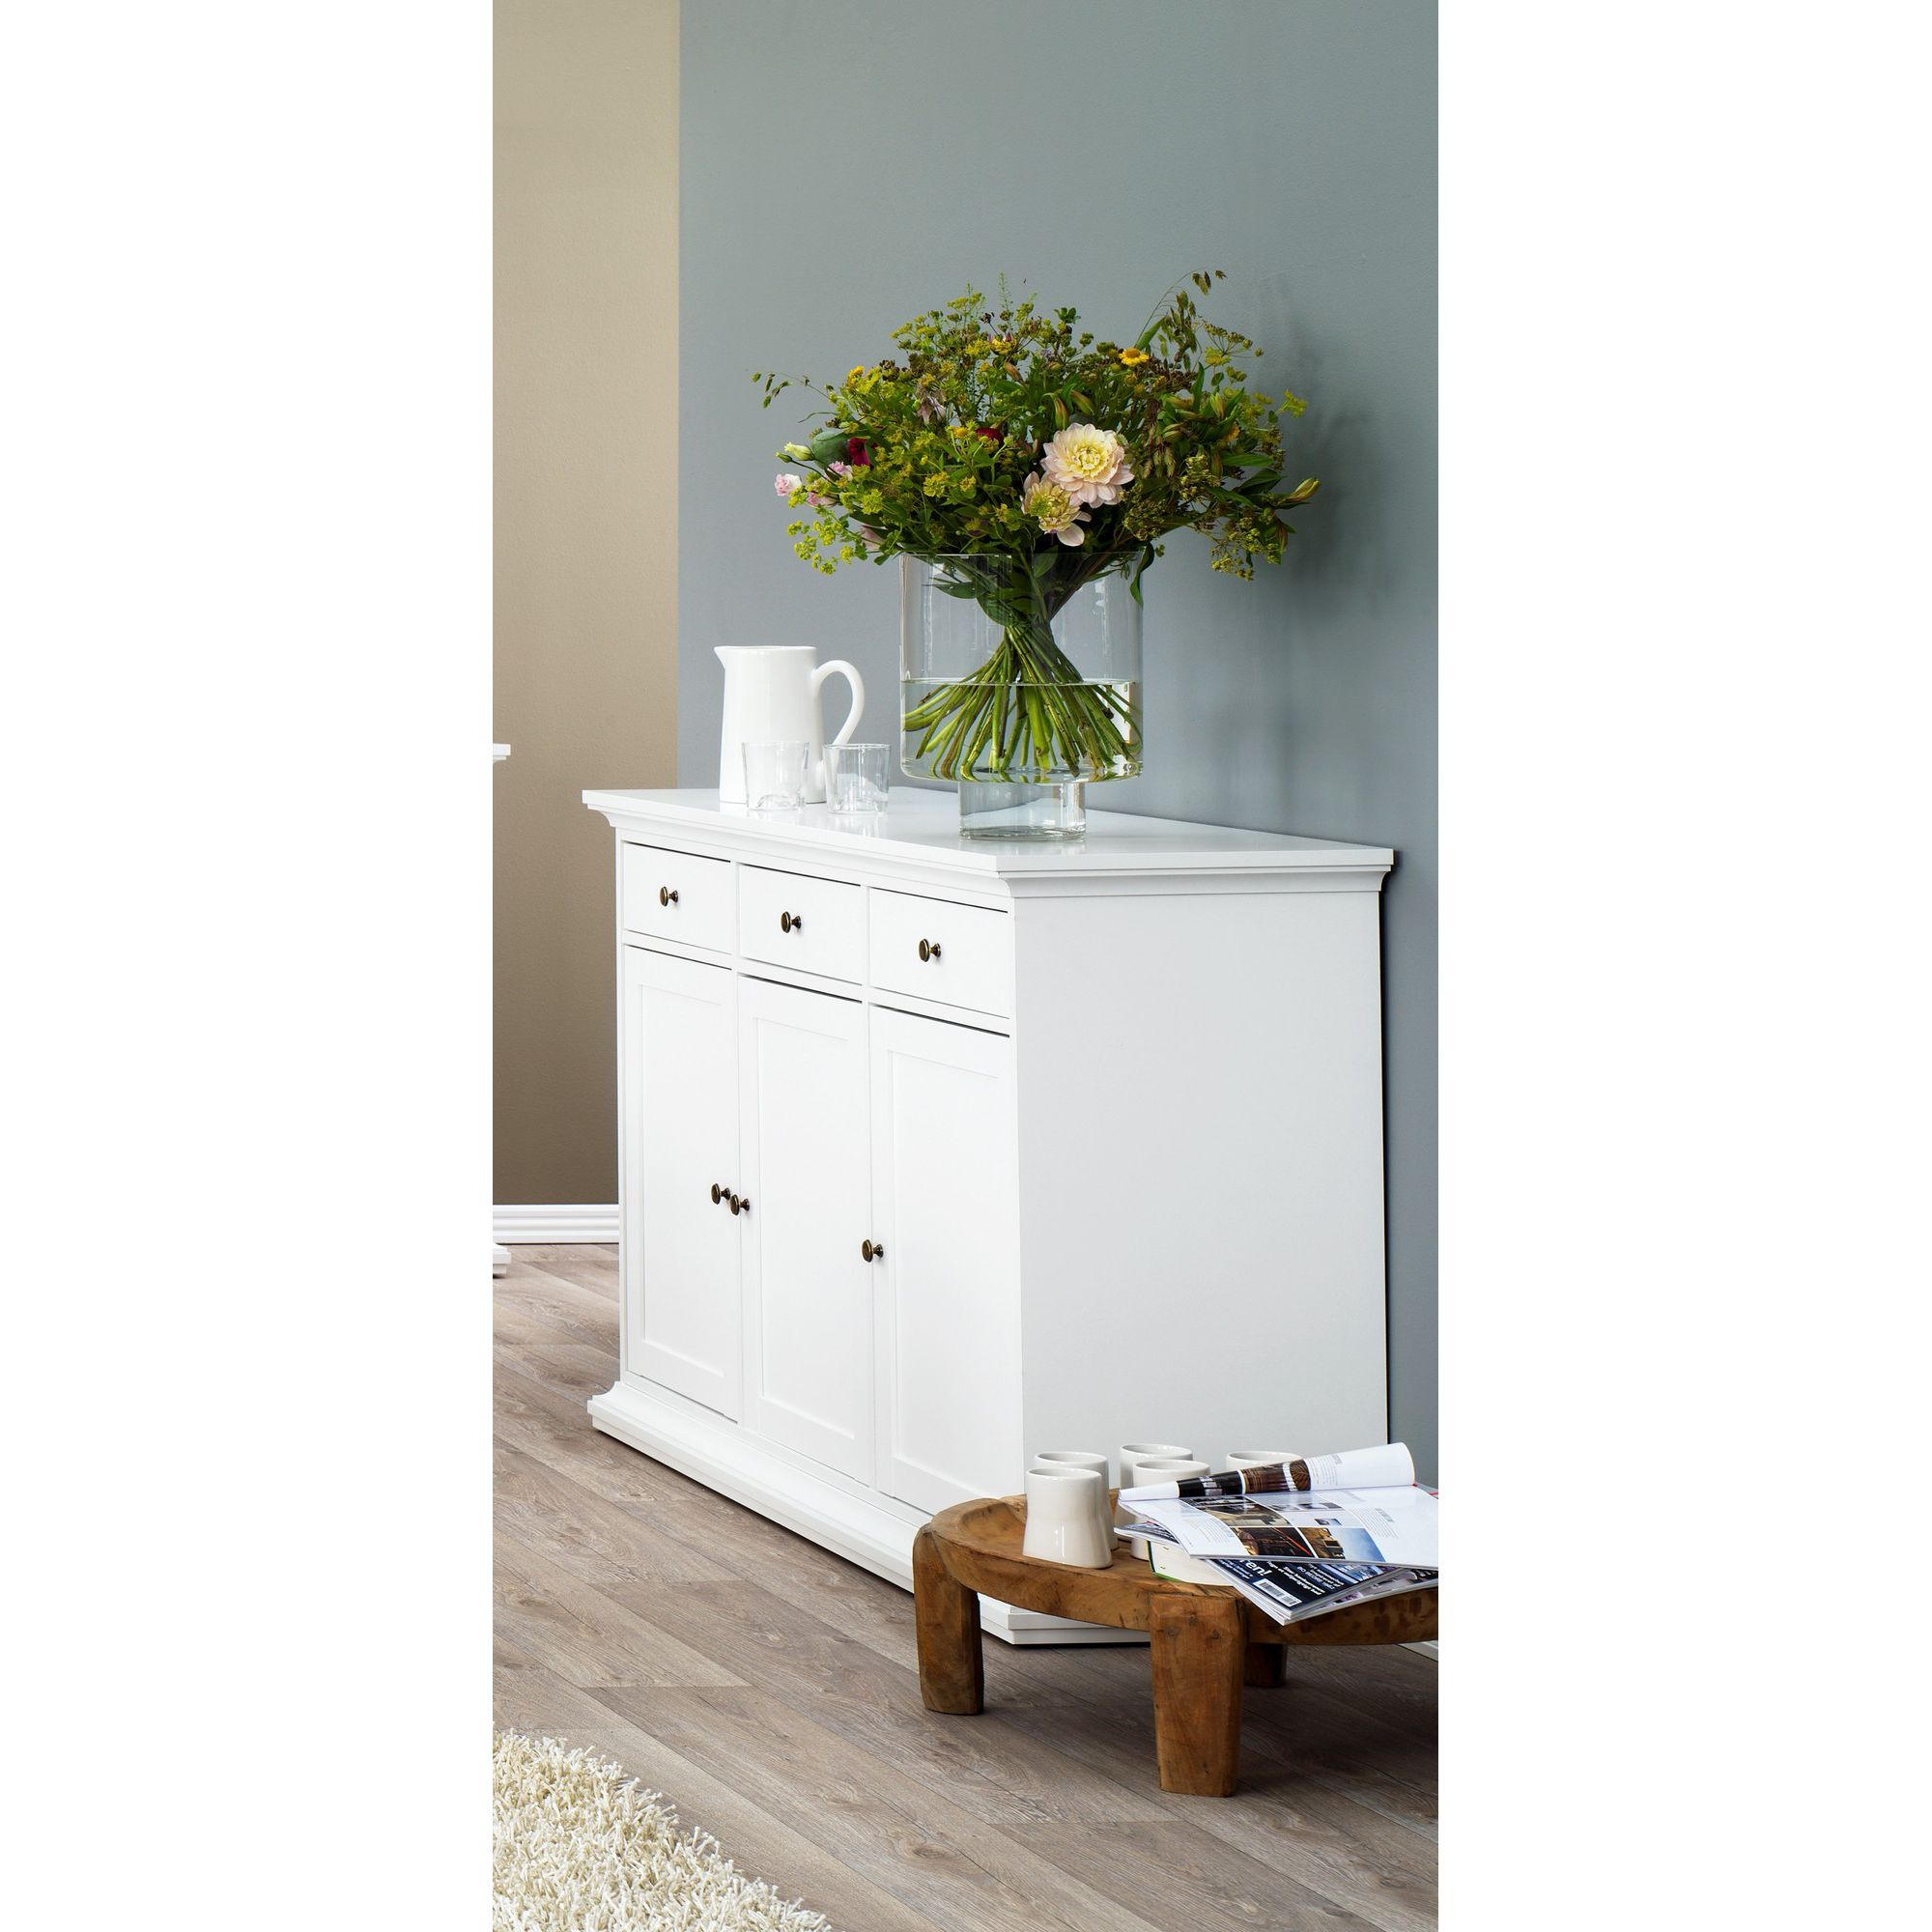 Tvilum Paris Sideboard with Three Doors and Three Drawers in White at Tesco Direct